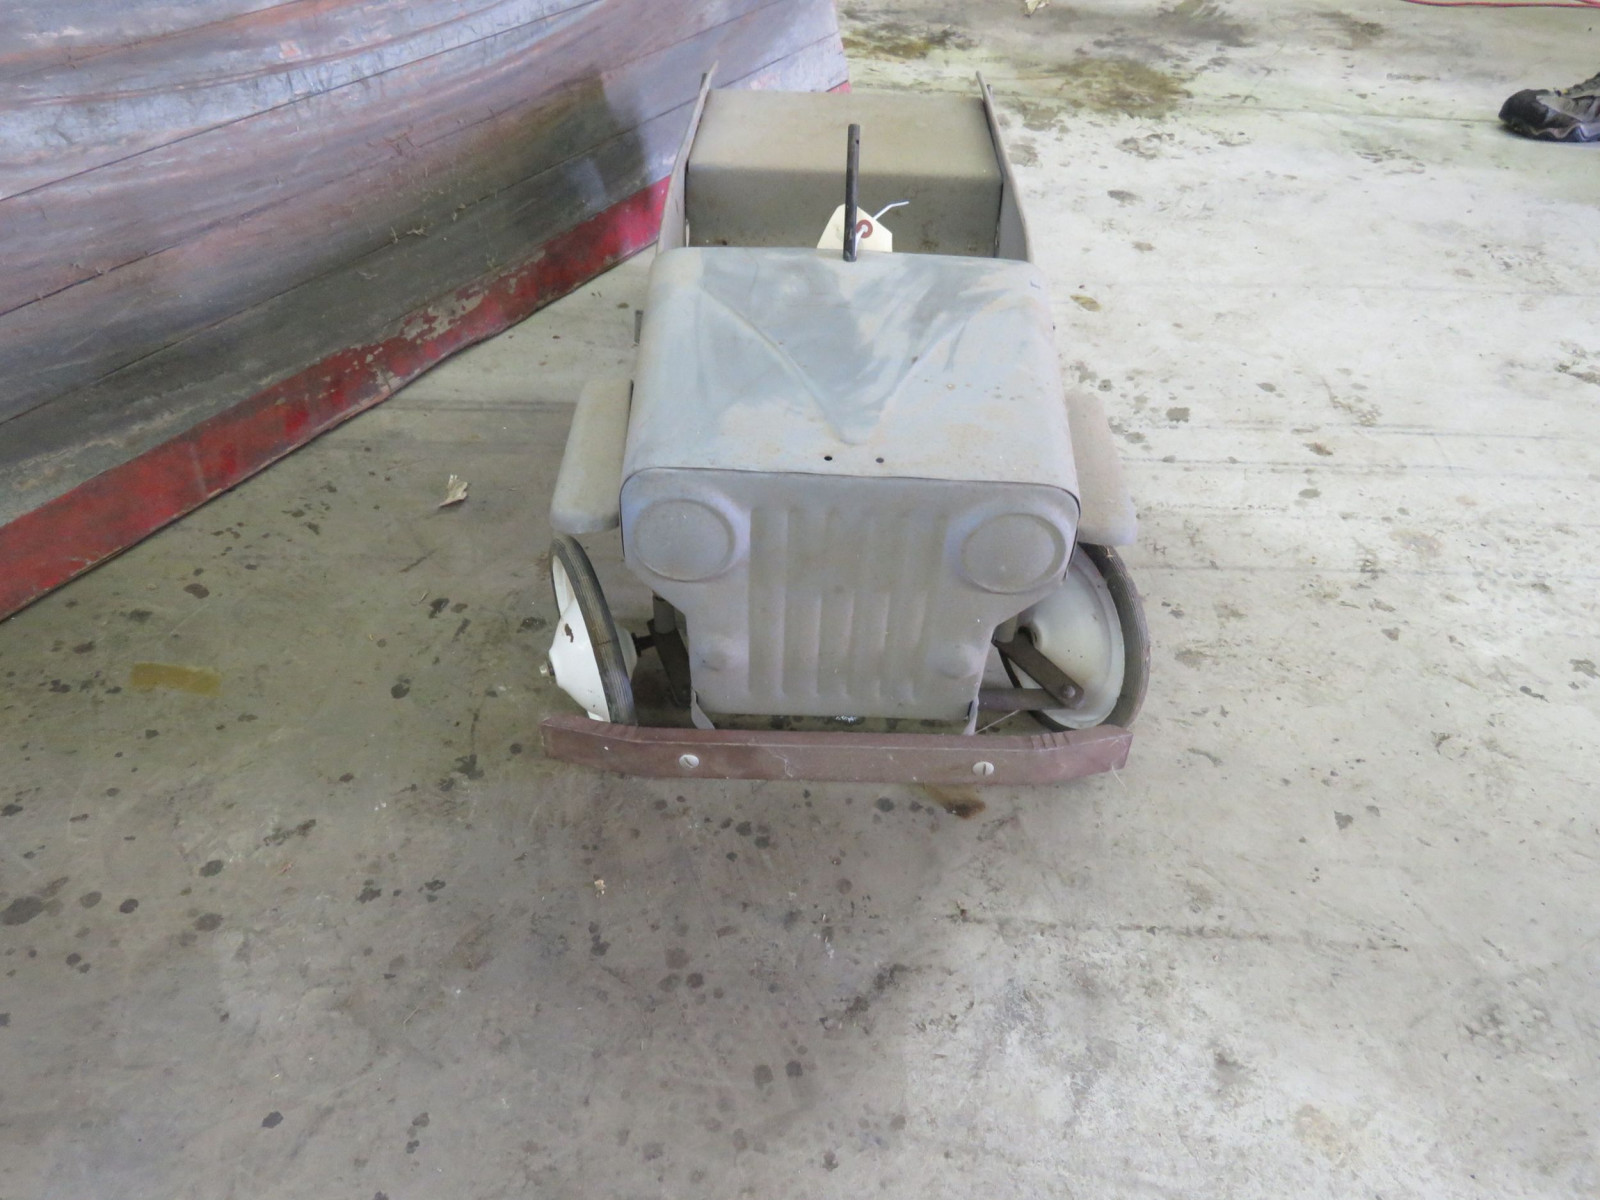 Vintage Garton Military Willys Jeep Pedal Car for restore - Image 2